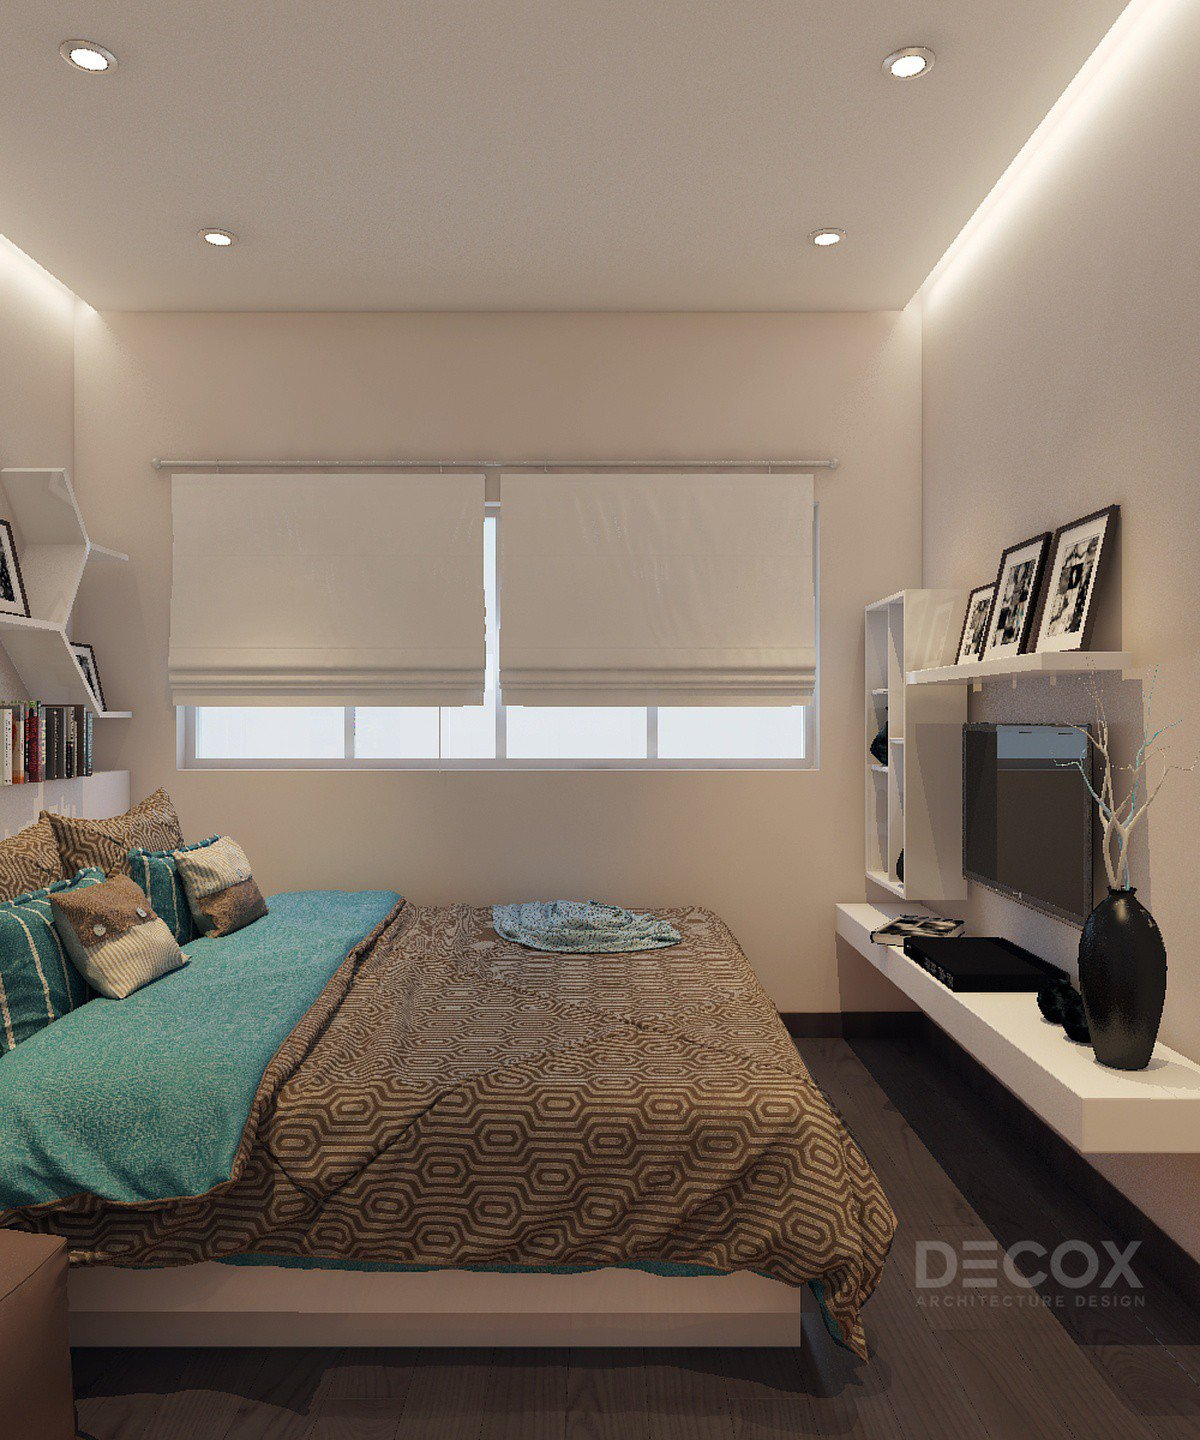 thiet-ke-noi-that-can-ho-useful-apartment-68m2-06-decox-design